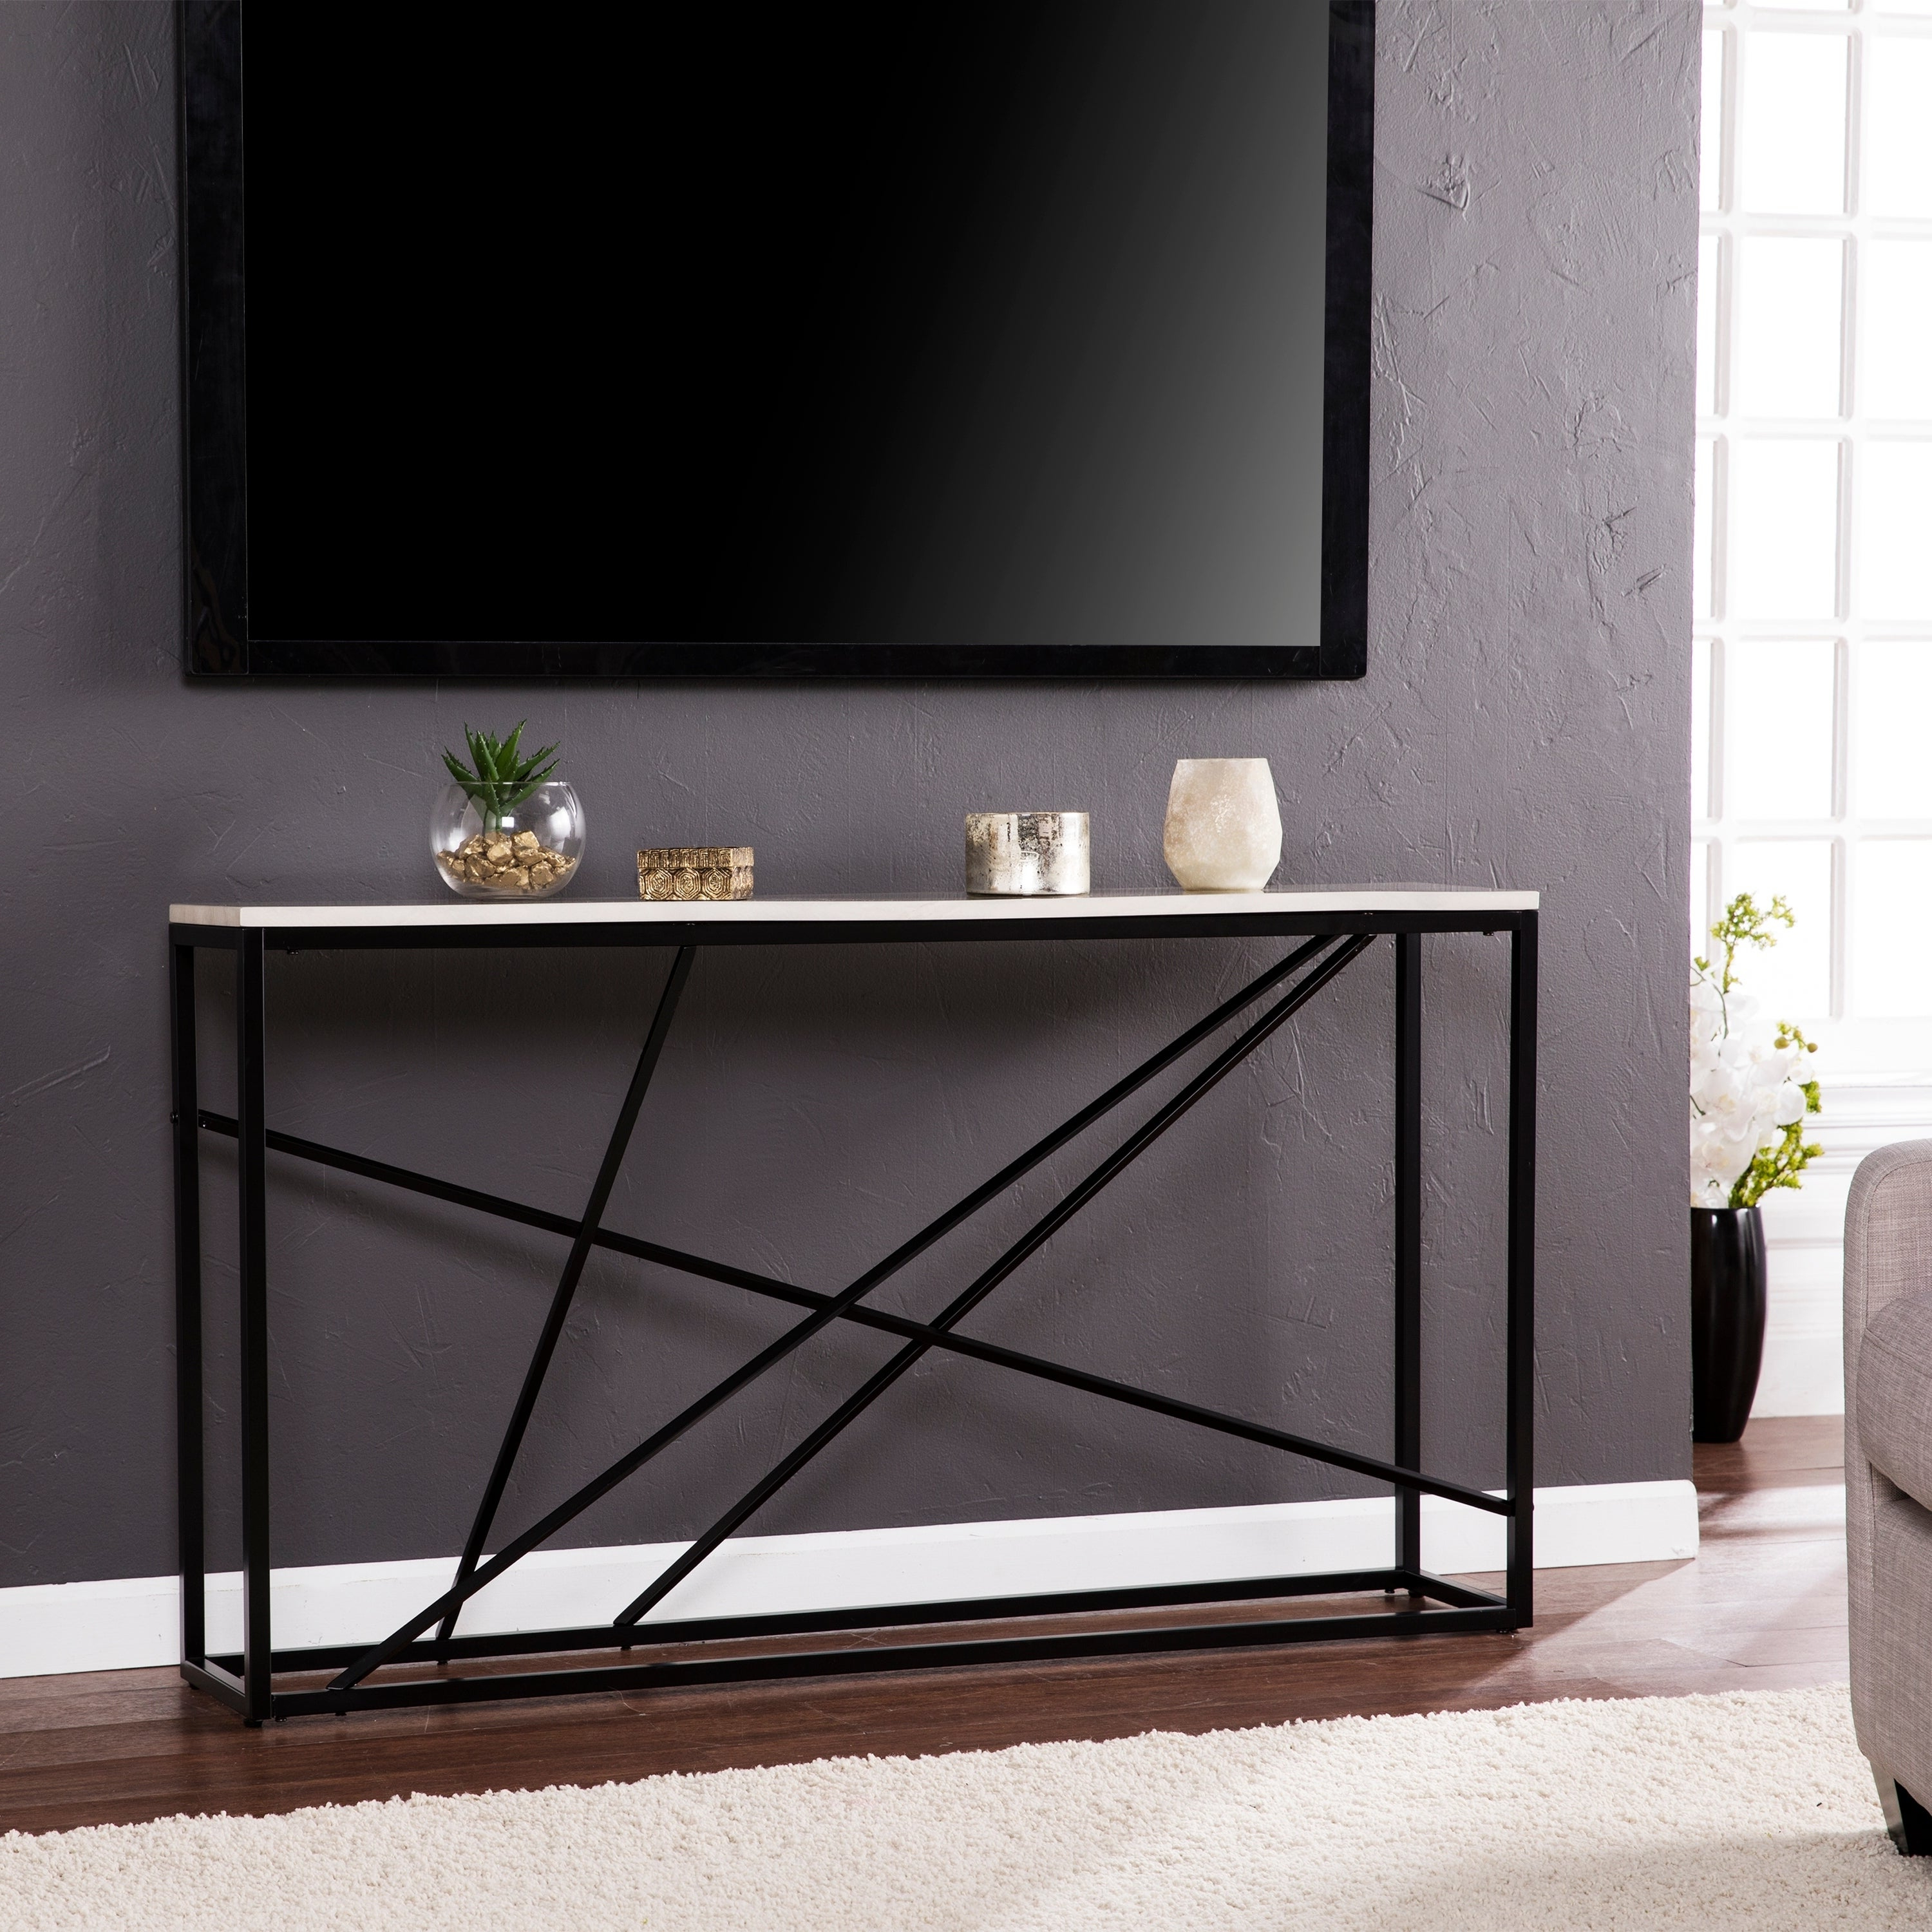 Shop Harper Blvd Kerley Faux Marble Skinny Console Table – Matte Intended For Favorite Kerley 4 Piece Dining Sets (View 19 of 25)